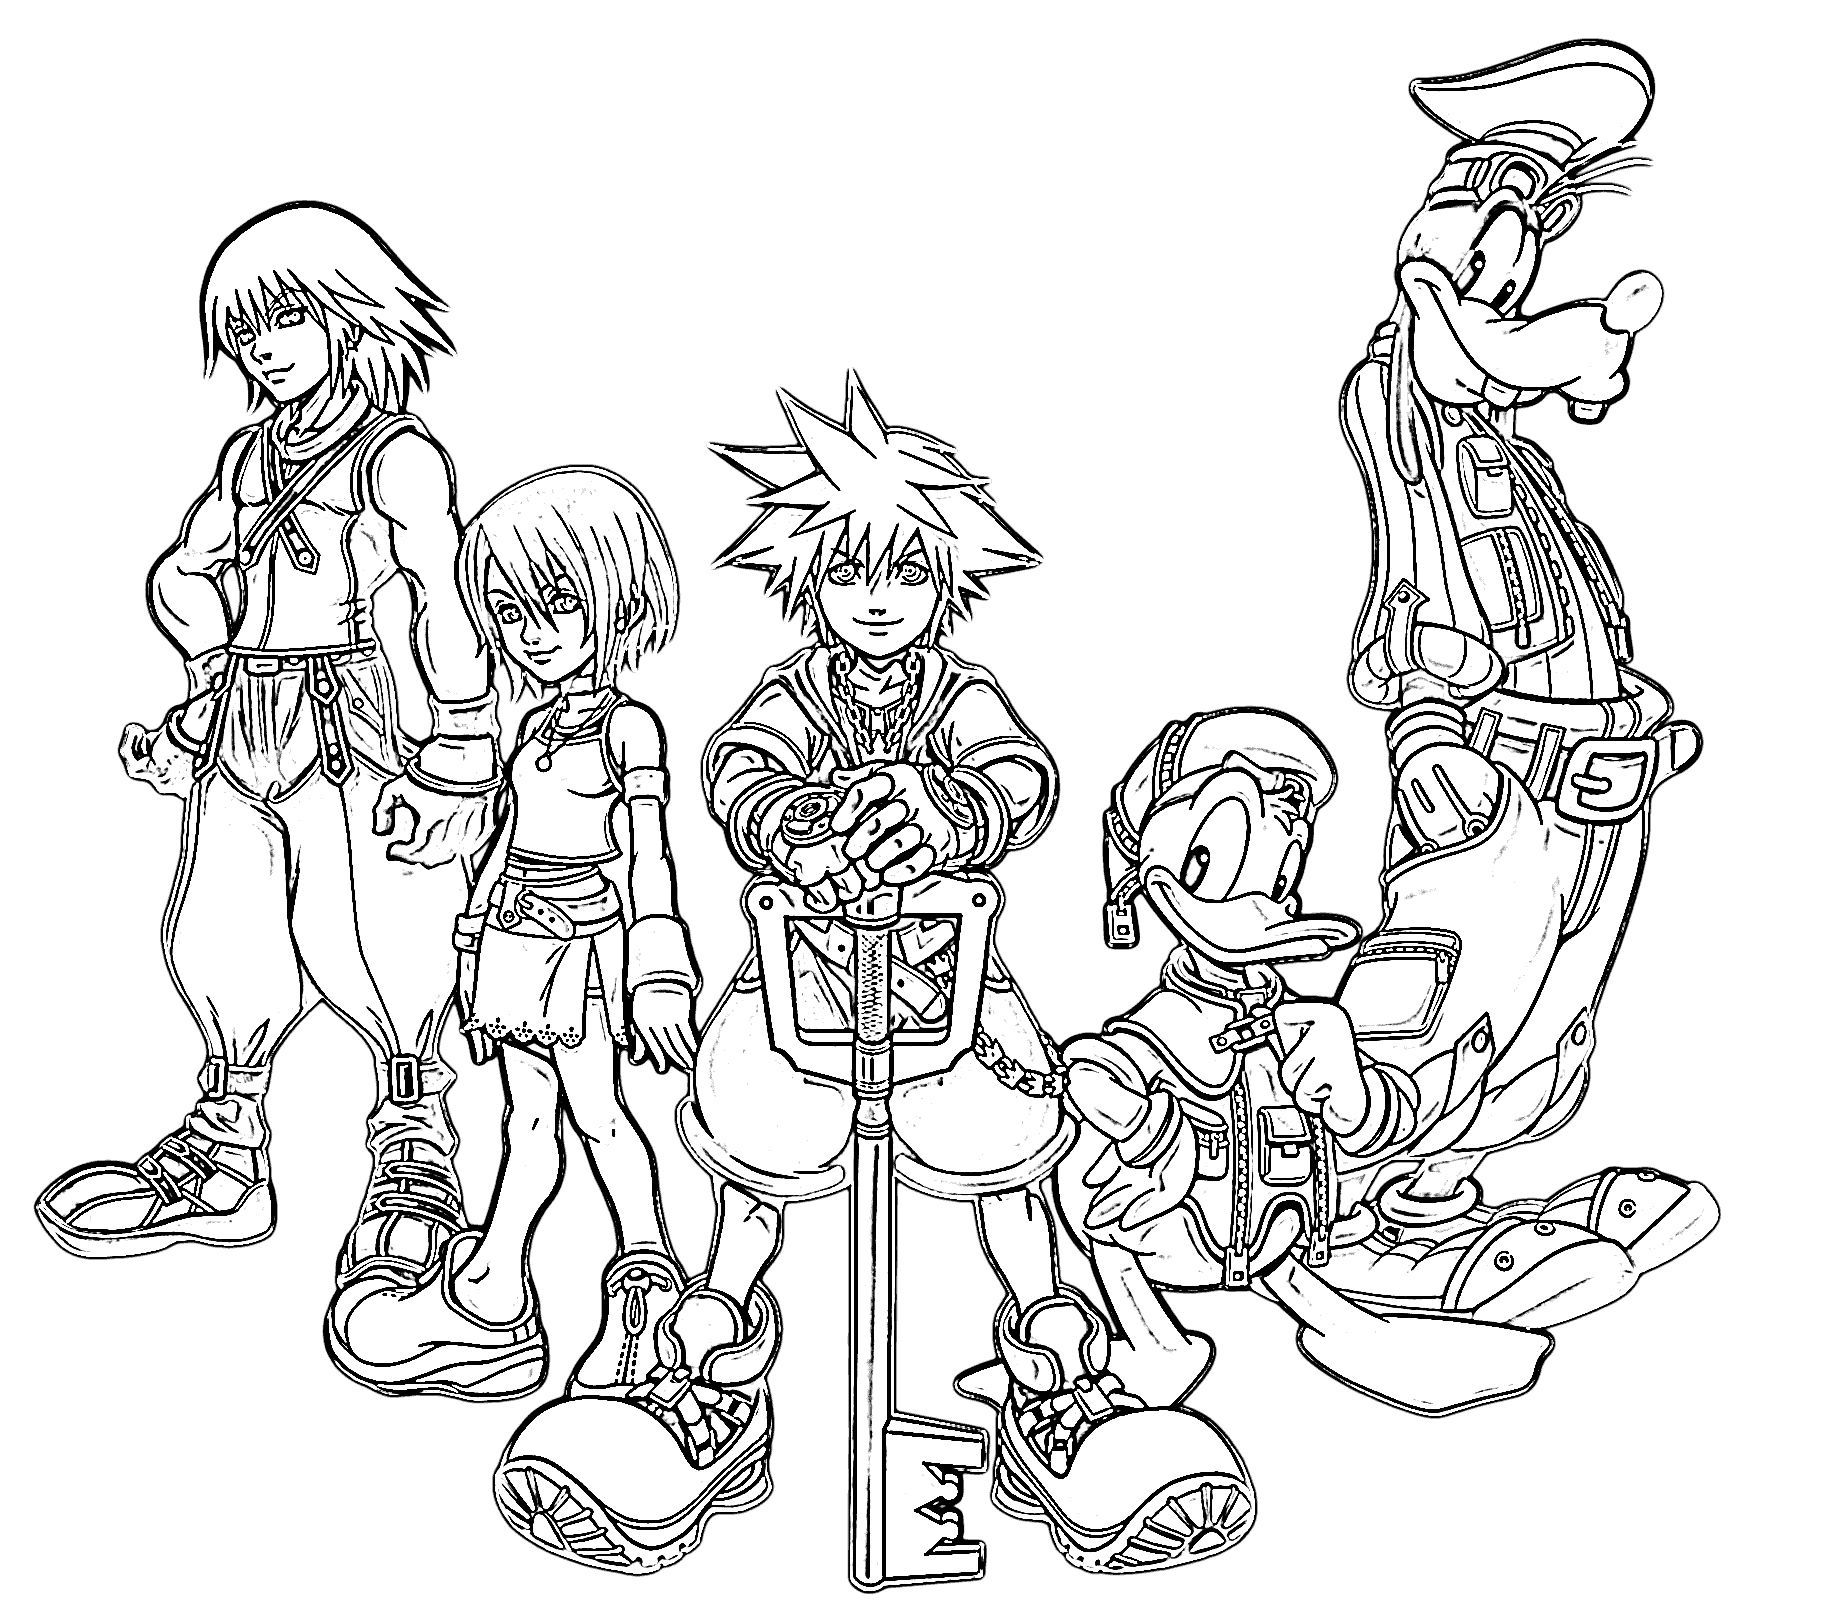 Kingdom hearts team coloring pages pinterest free for Kingdom hearts printable coloring pages